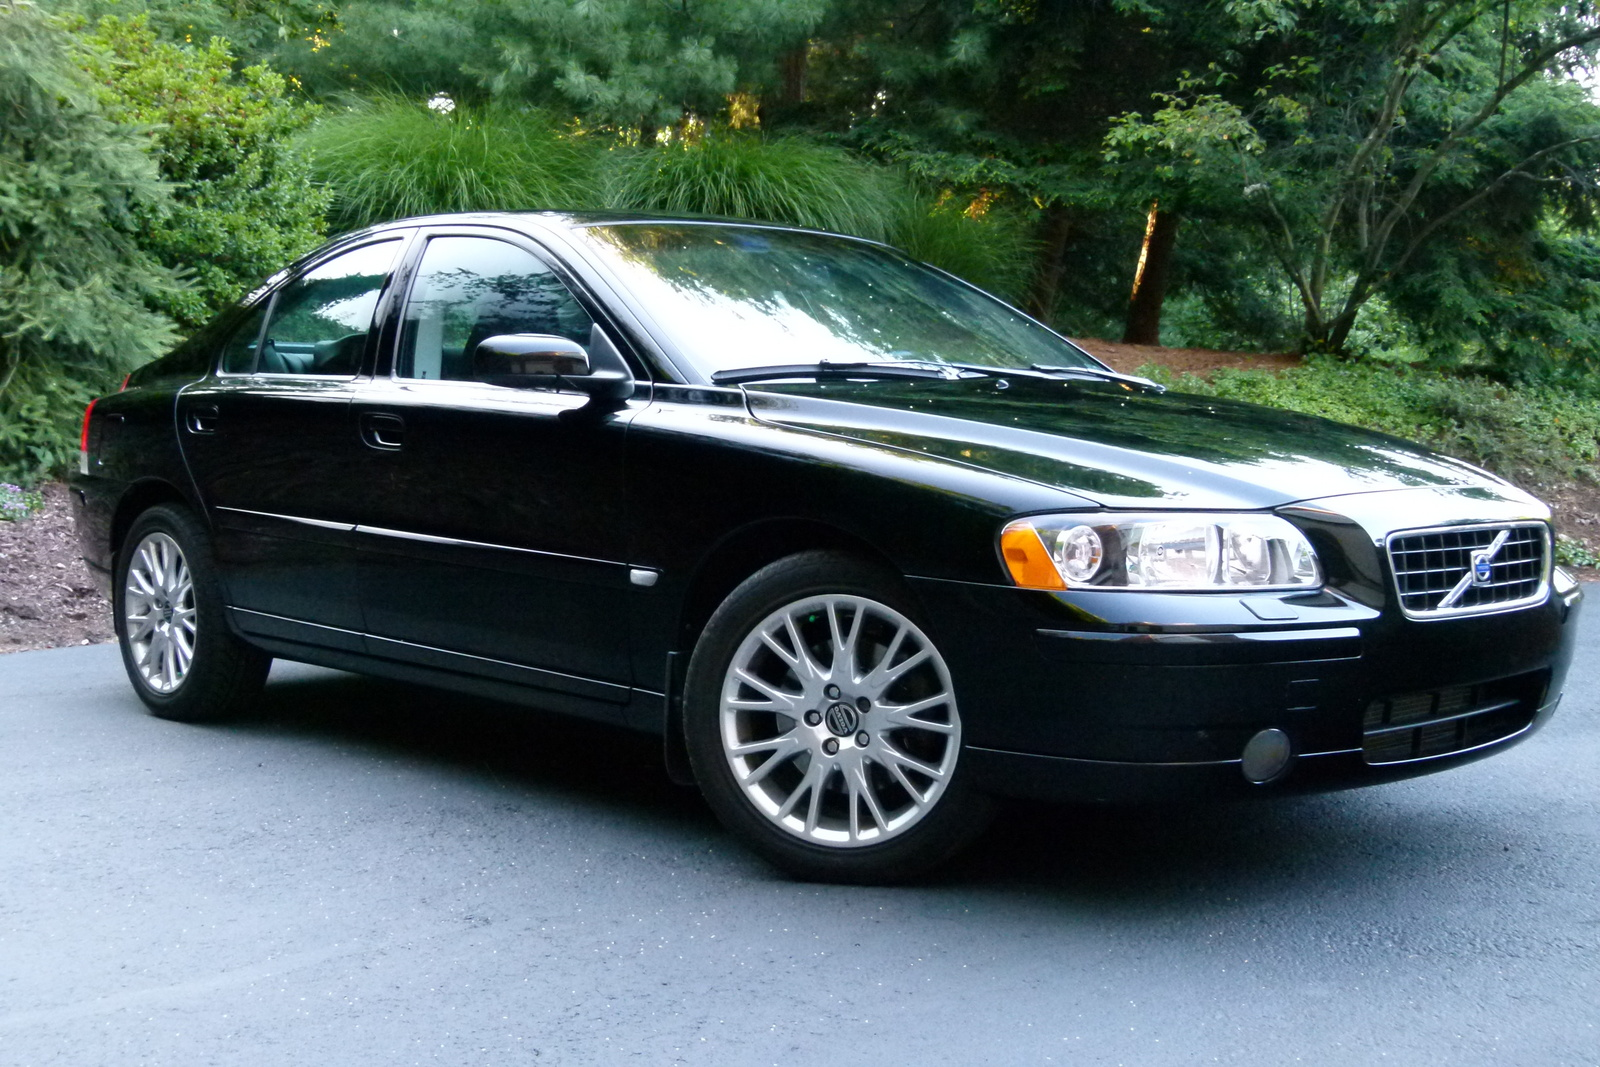 2005 volvo s60 exterior pictures cargurus. Black Bedroom Furniture Sets. Home Design Ideas